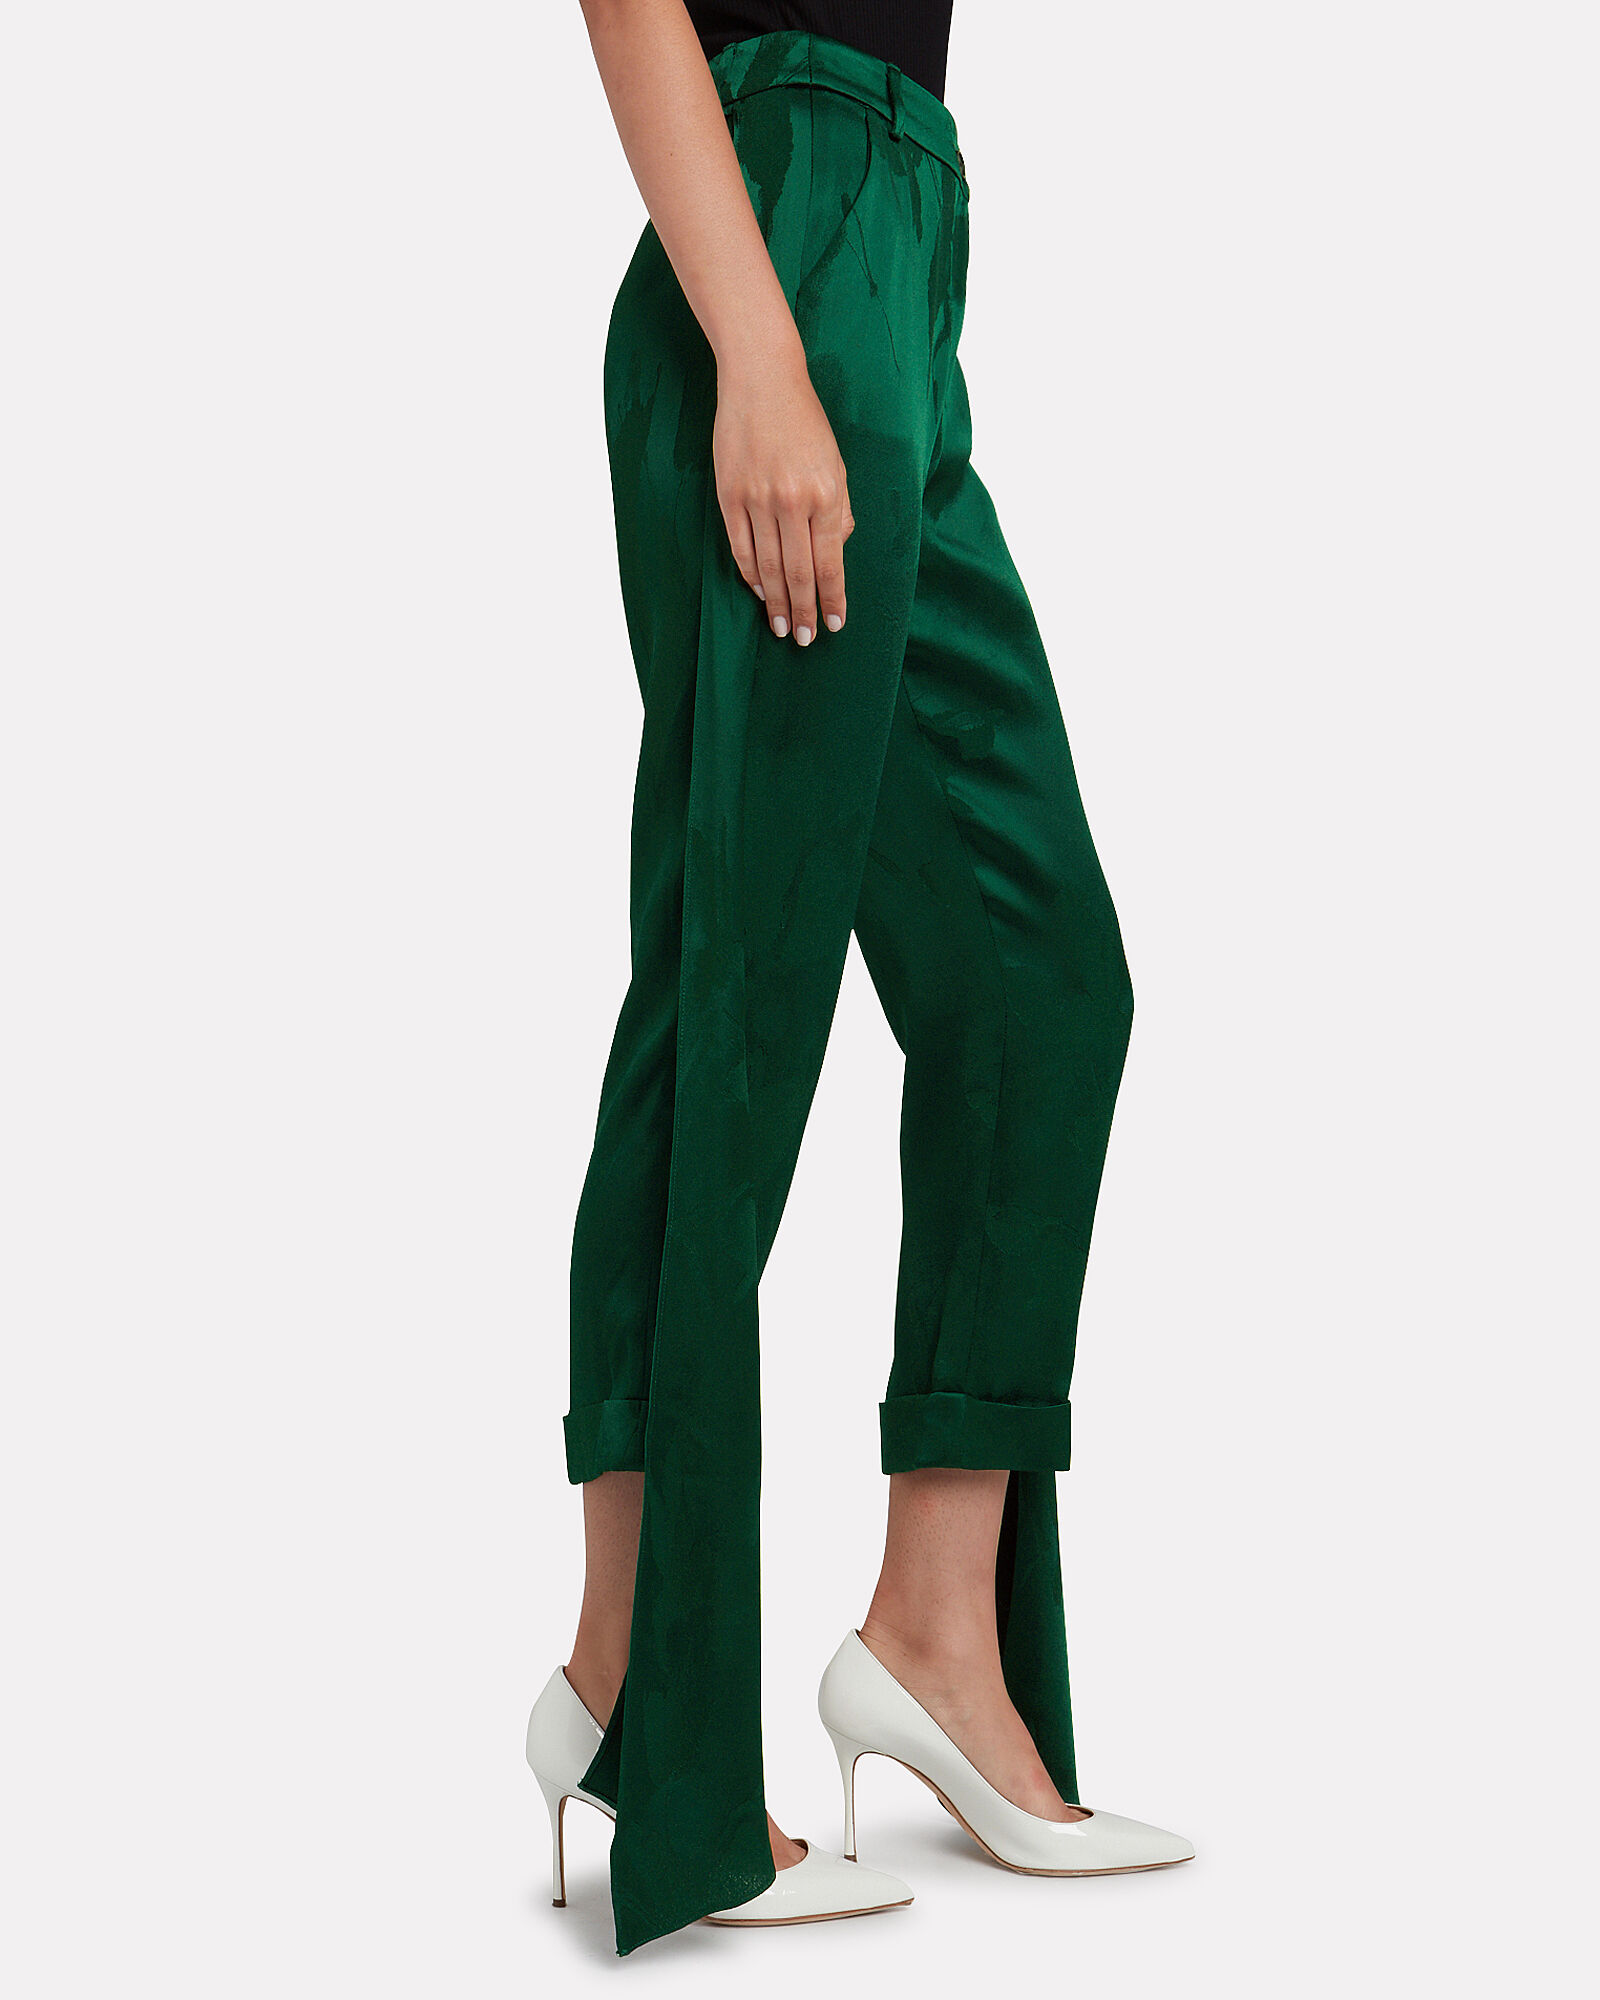 Smythe Satin Jacquard Pants, EMERALD, hi-res